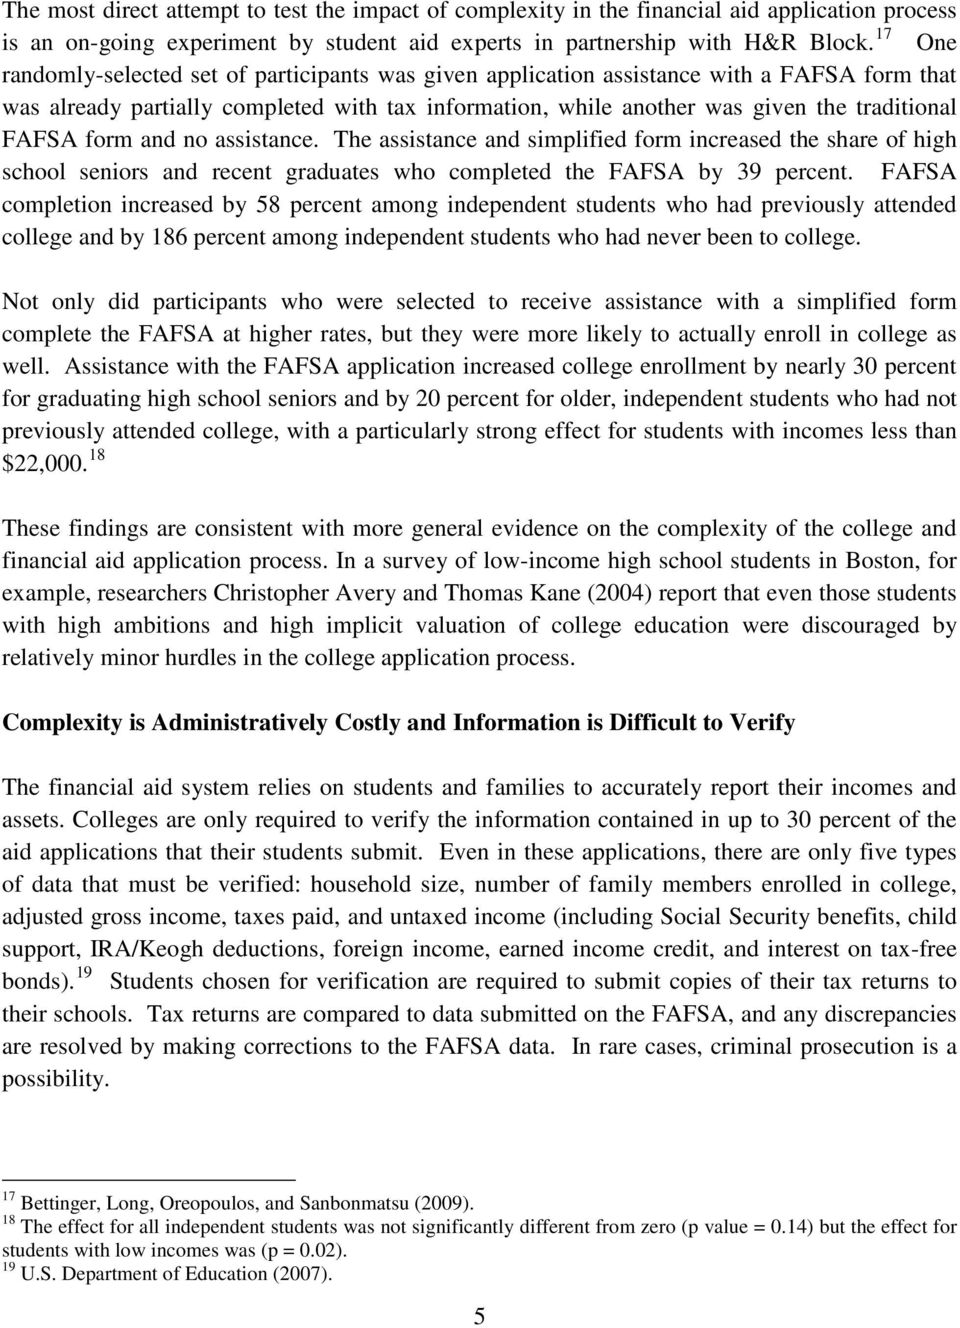 FAFSA form and no assistance. The assistance and simplified form increased the share of high school seniors and recent graduates who completed the FAFSA by 39 percent.